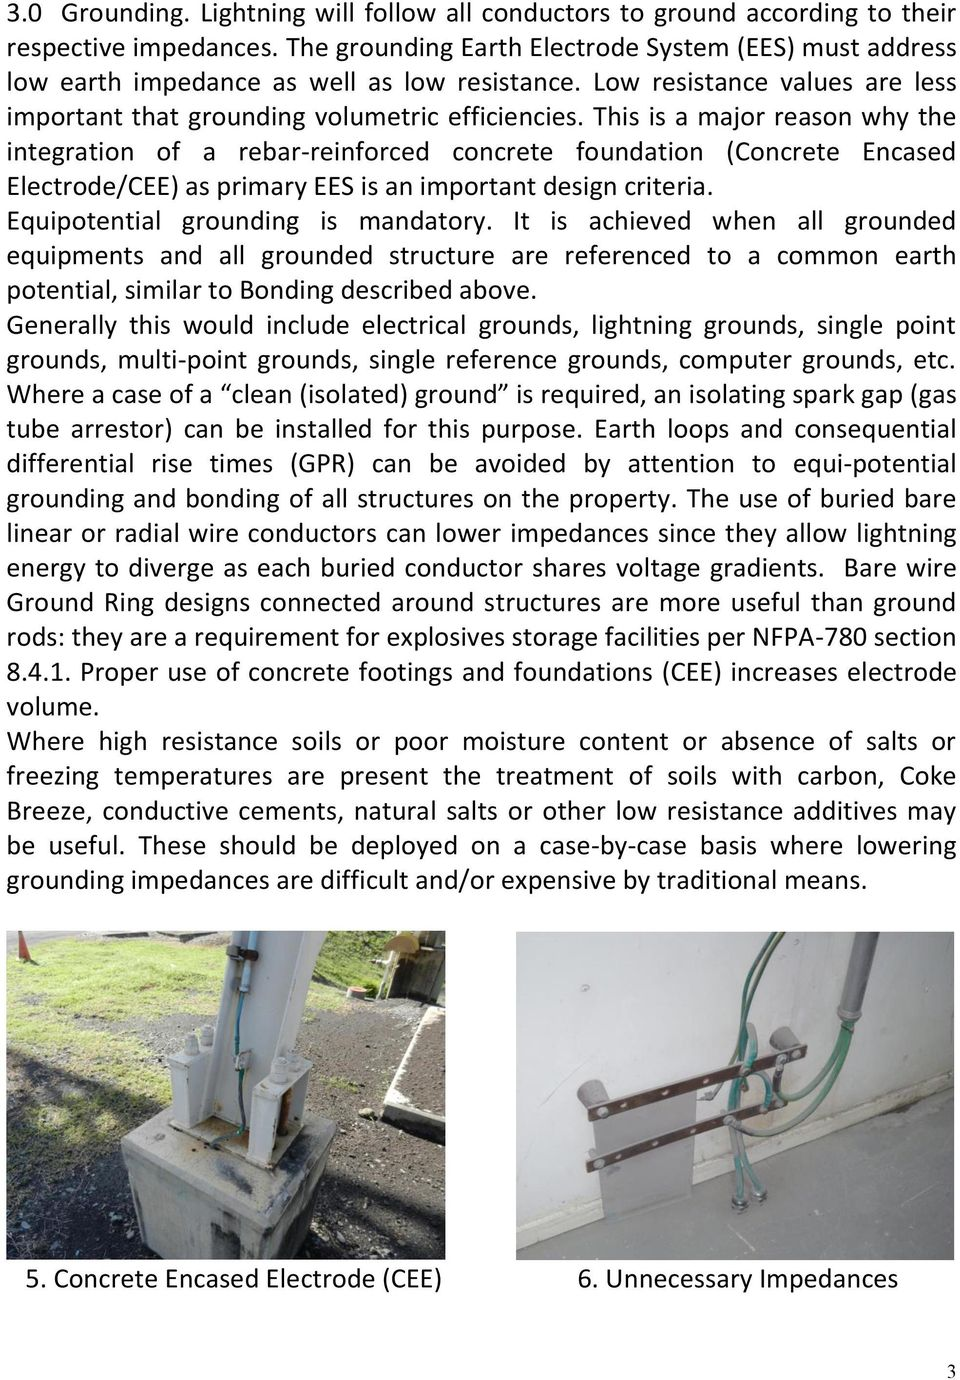 This is a major reason why the integration of a rebar-reinforced concrete foundation (Concrete Encased Electrode/CEE) as primary EES is an important design criteria.